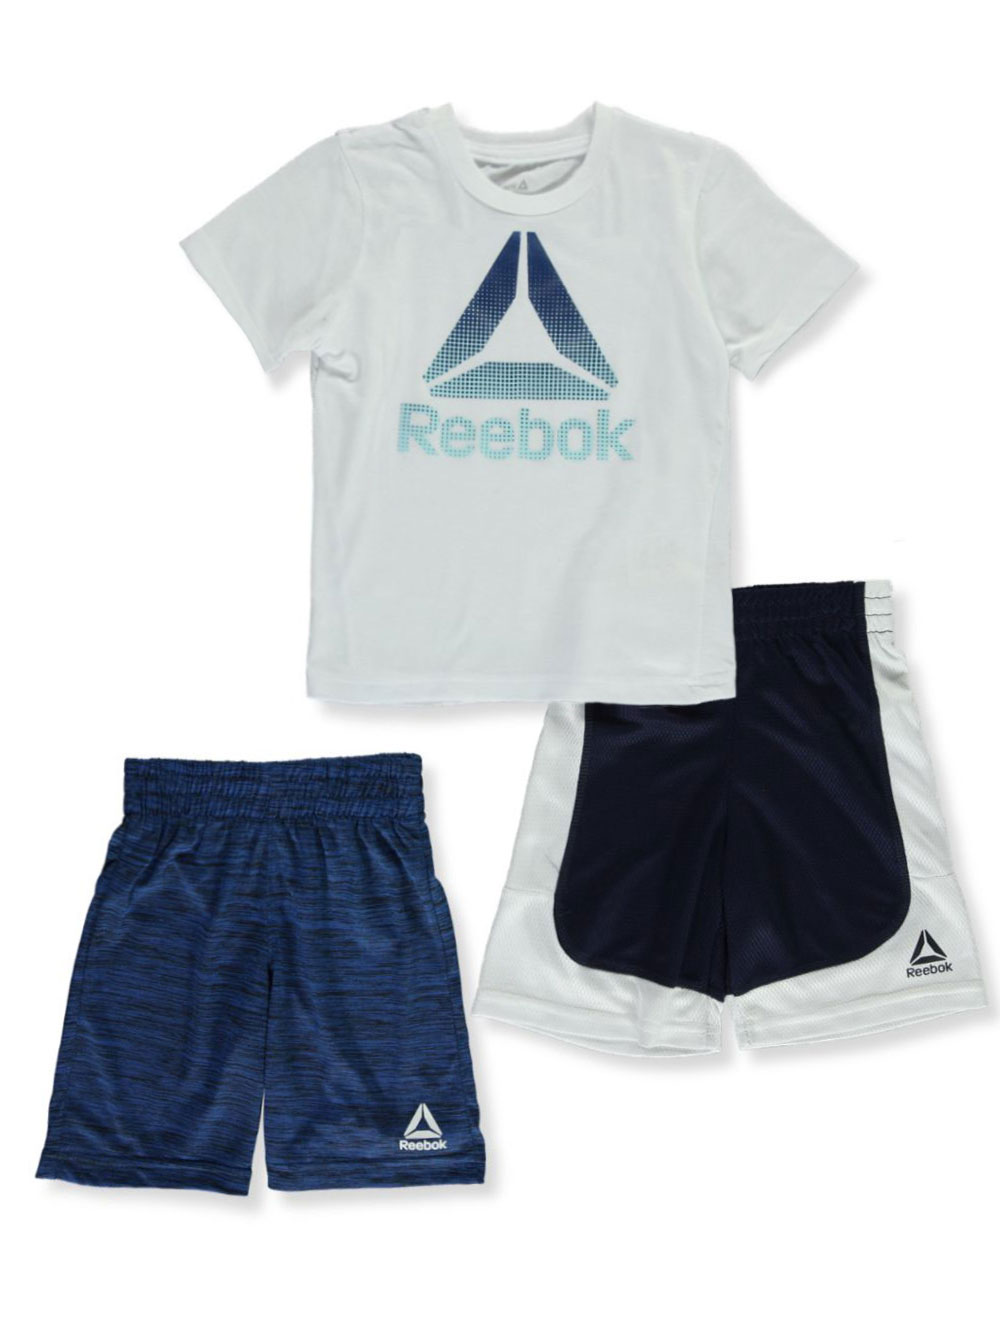 Reebok Boys Shorts Set